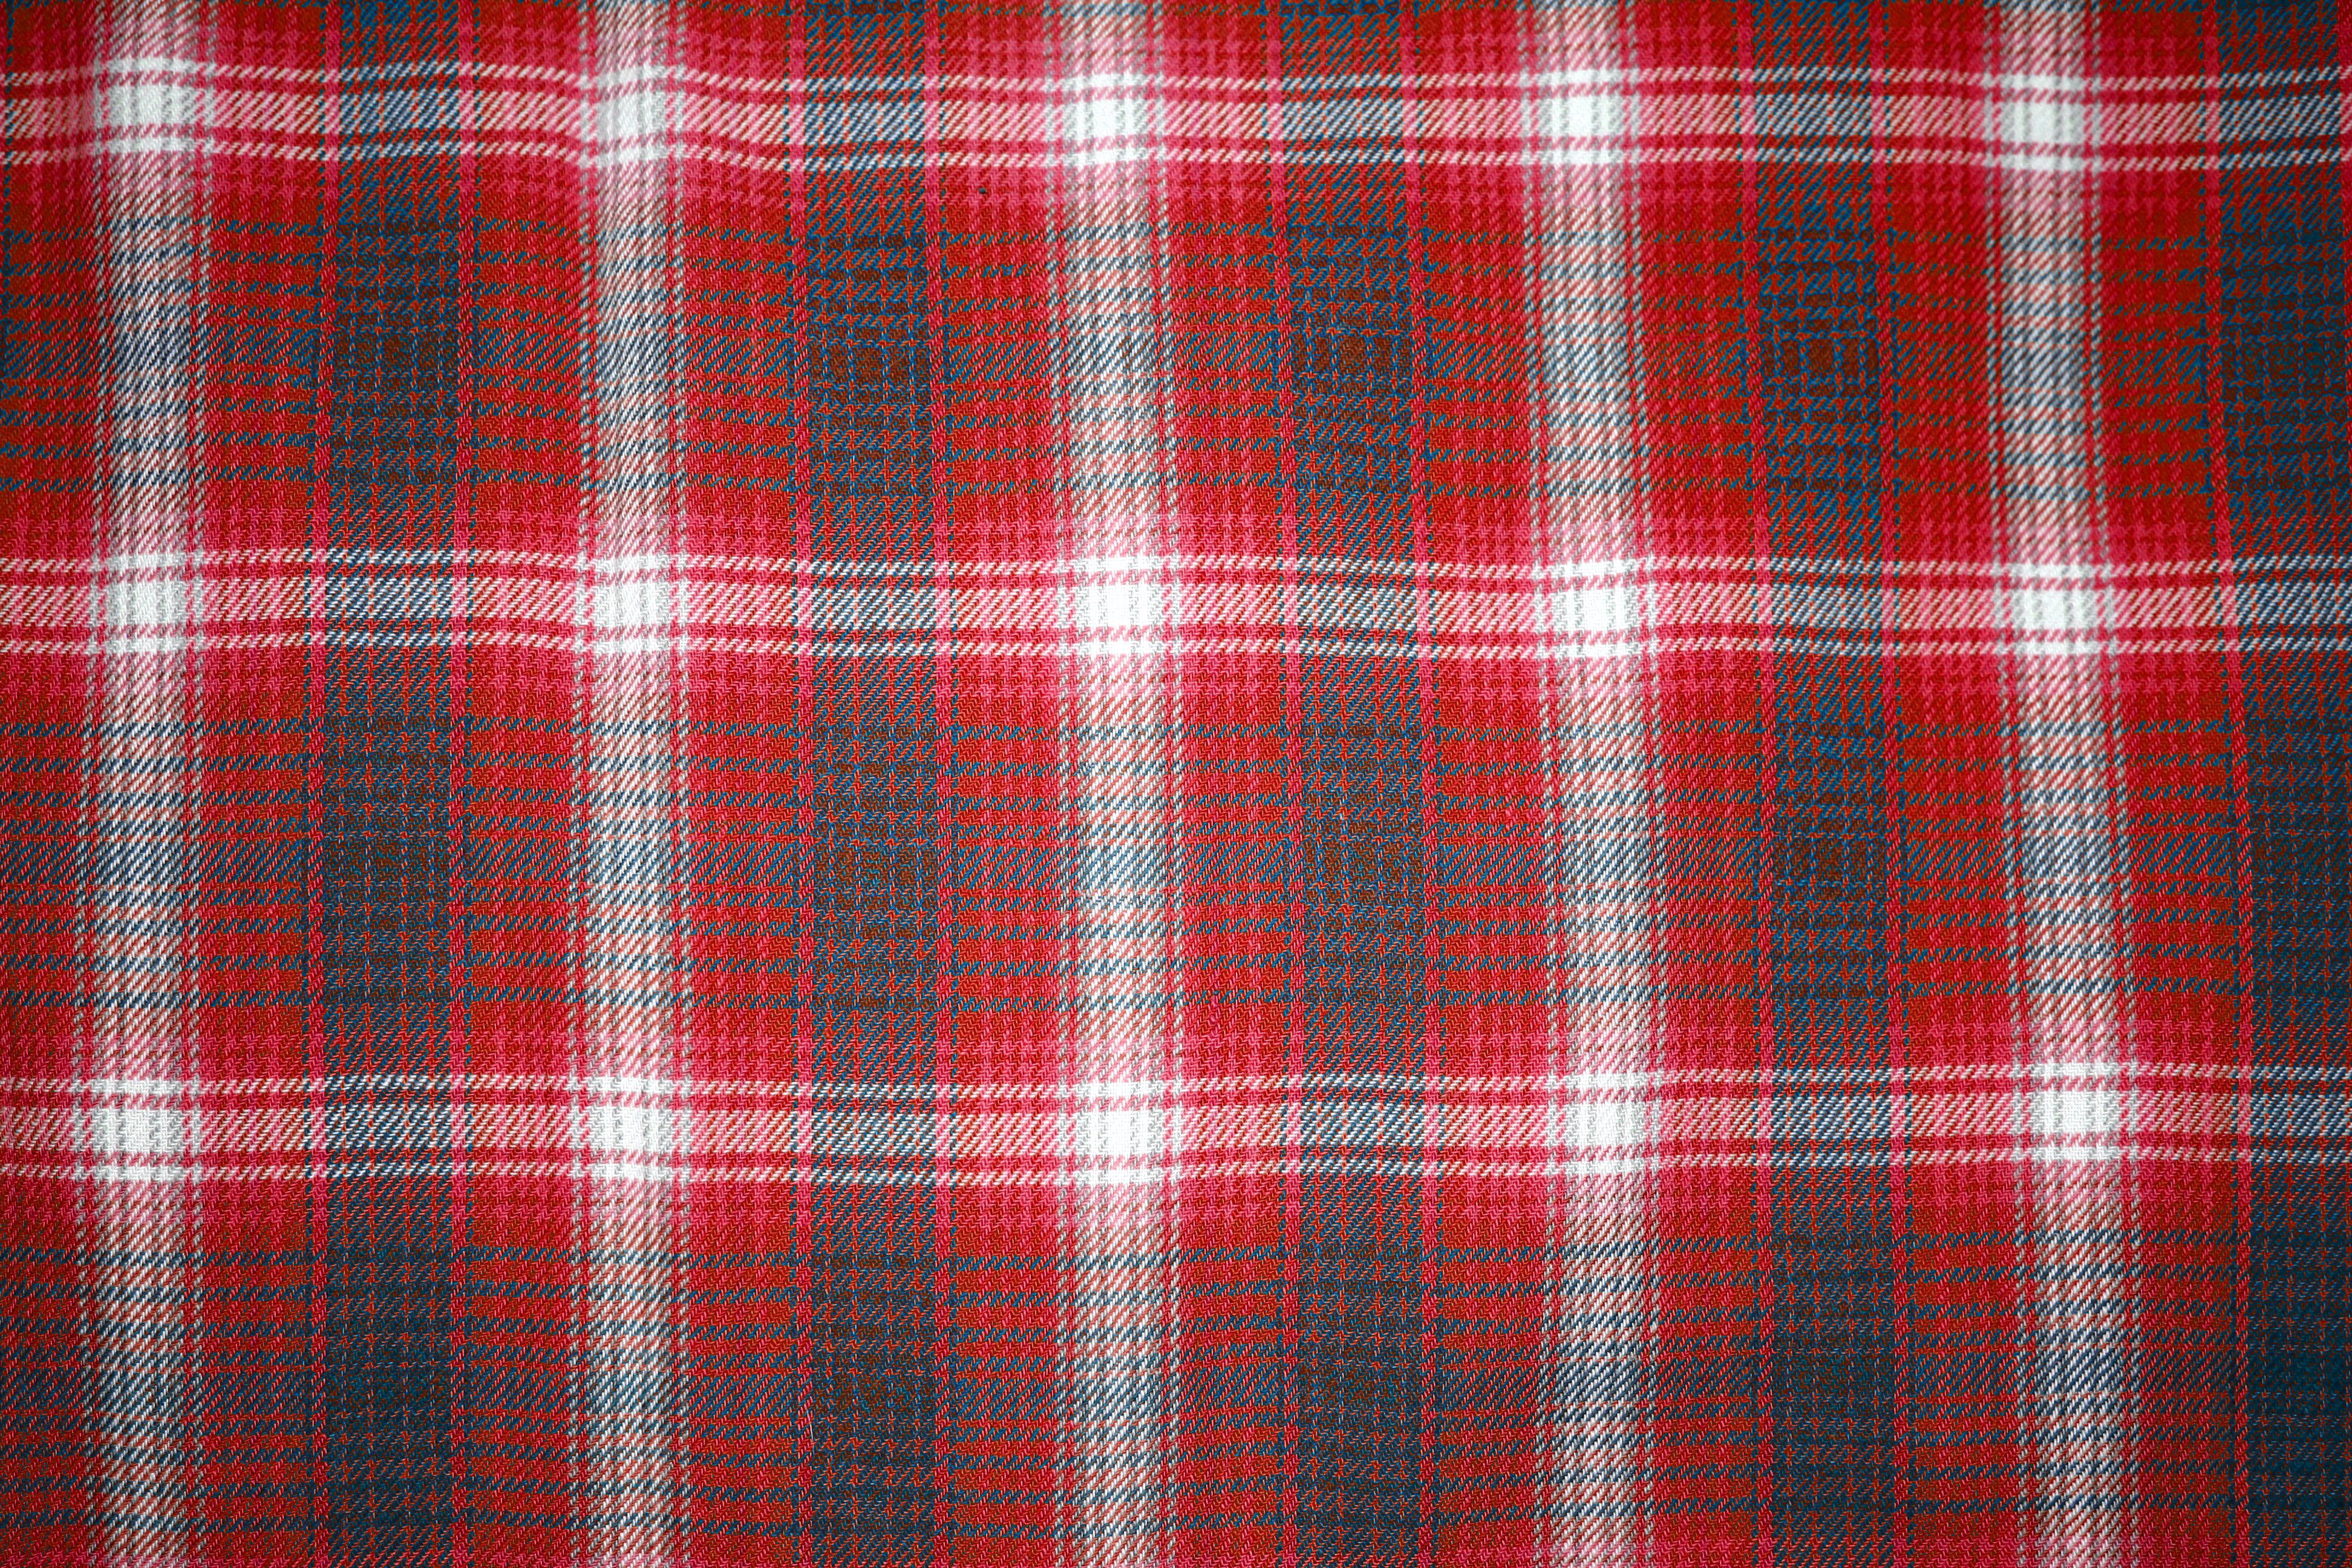 Red and Blue Plaid Fabric Close Up Texture Picture | Free Photograph ...